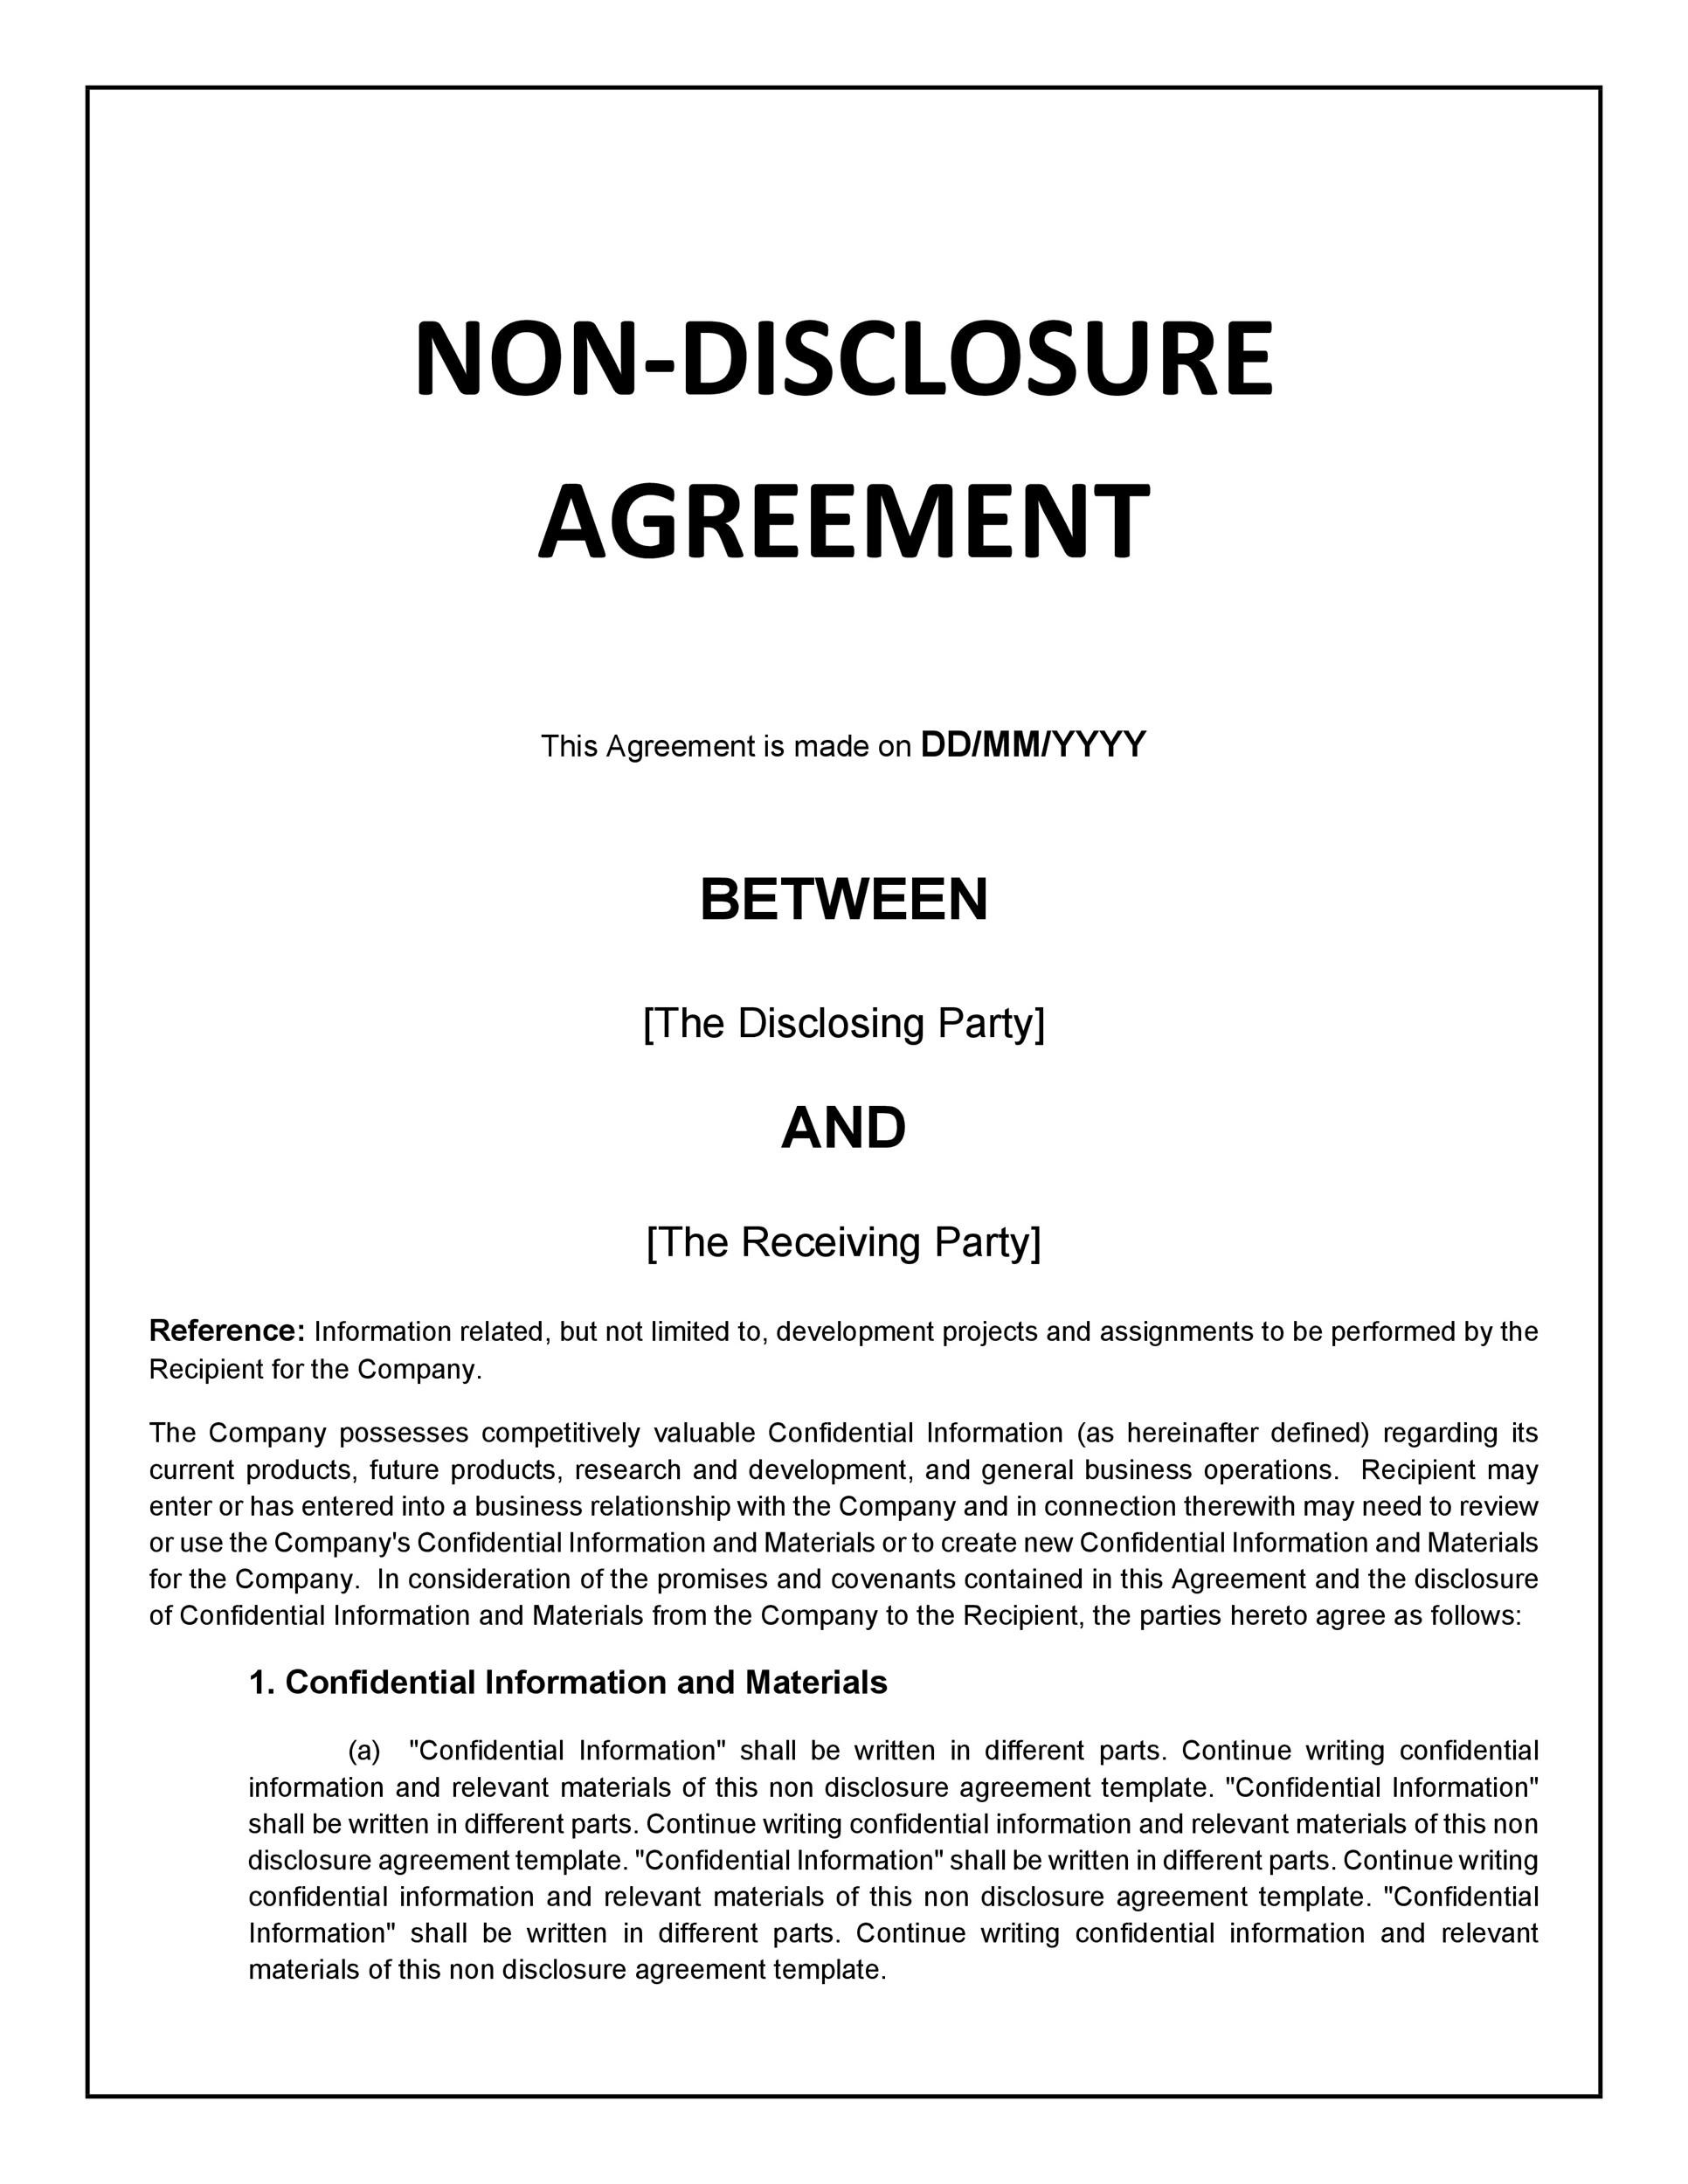 40 Non Disclosure Agreement Templates, Samples  Forms - Template Lab - confidentiality agreement template word